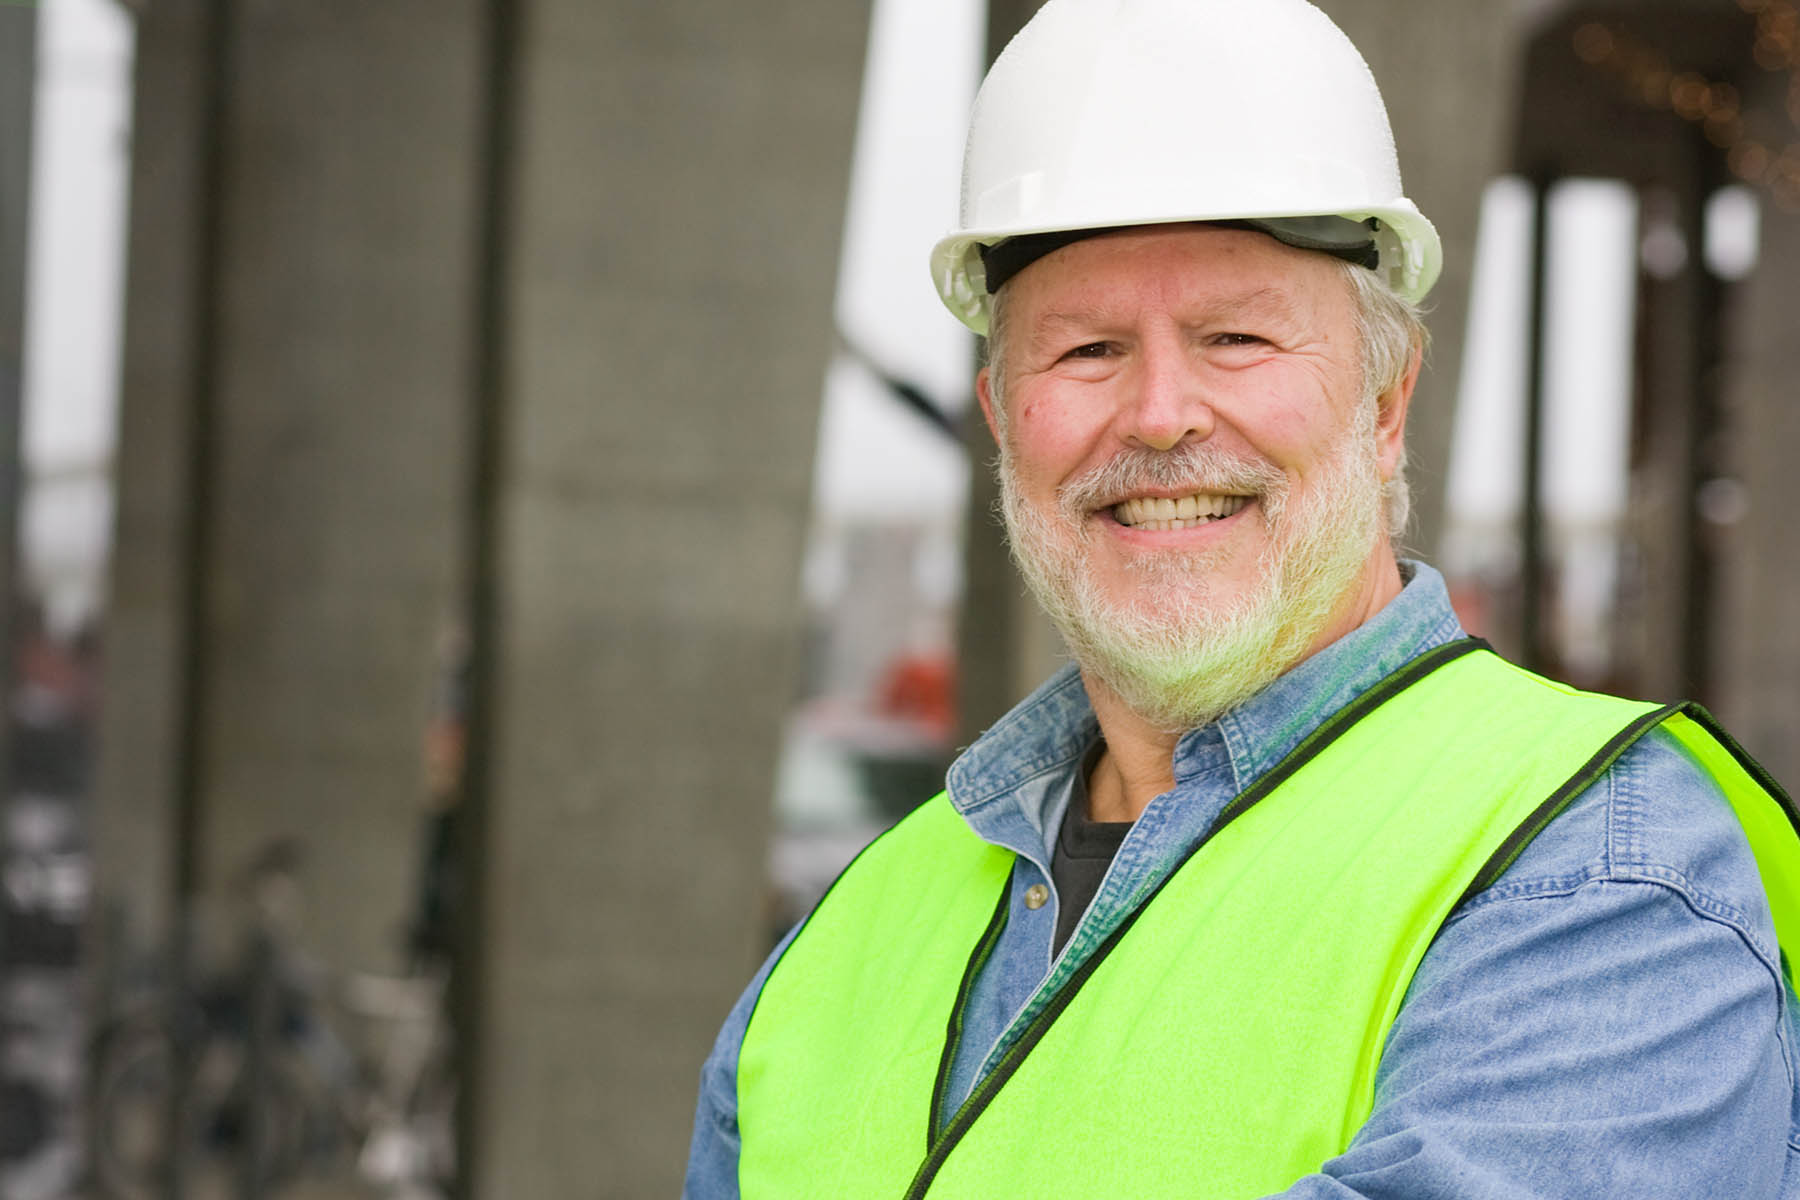 warehouse manager old man with beard